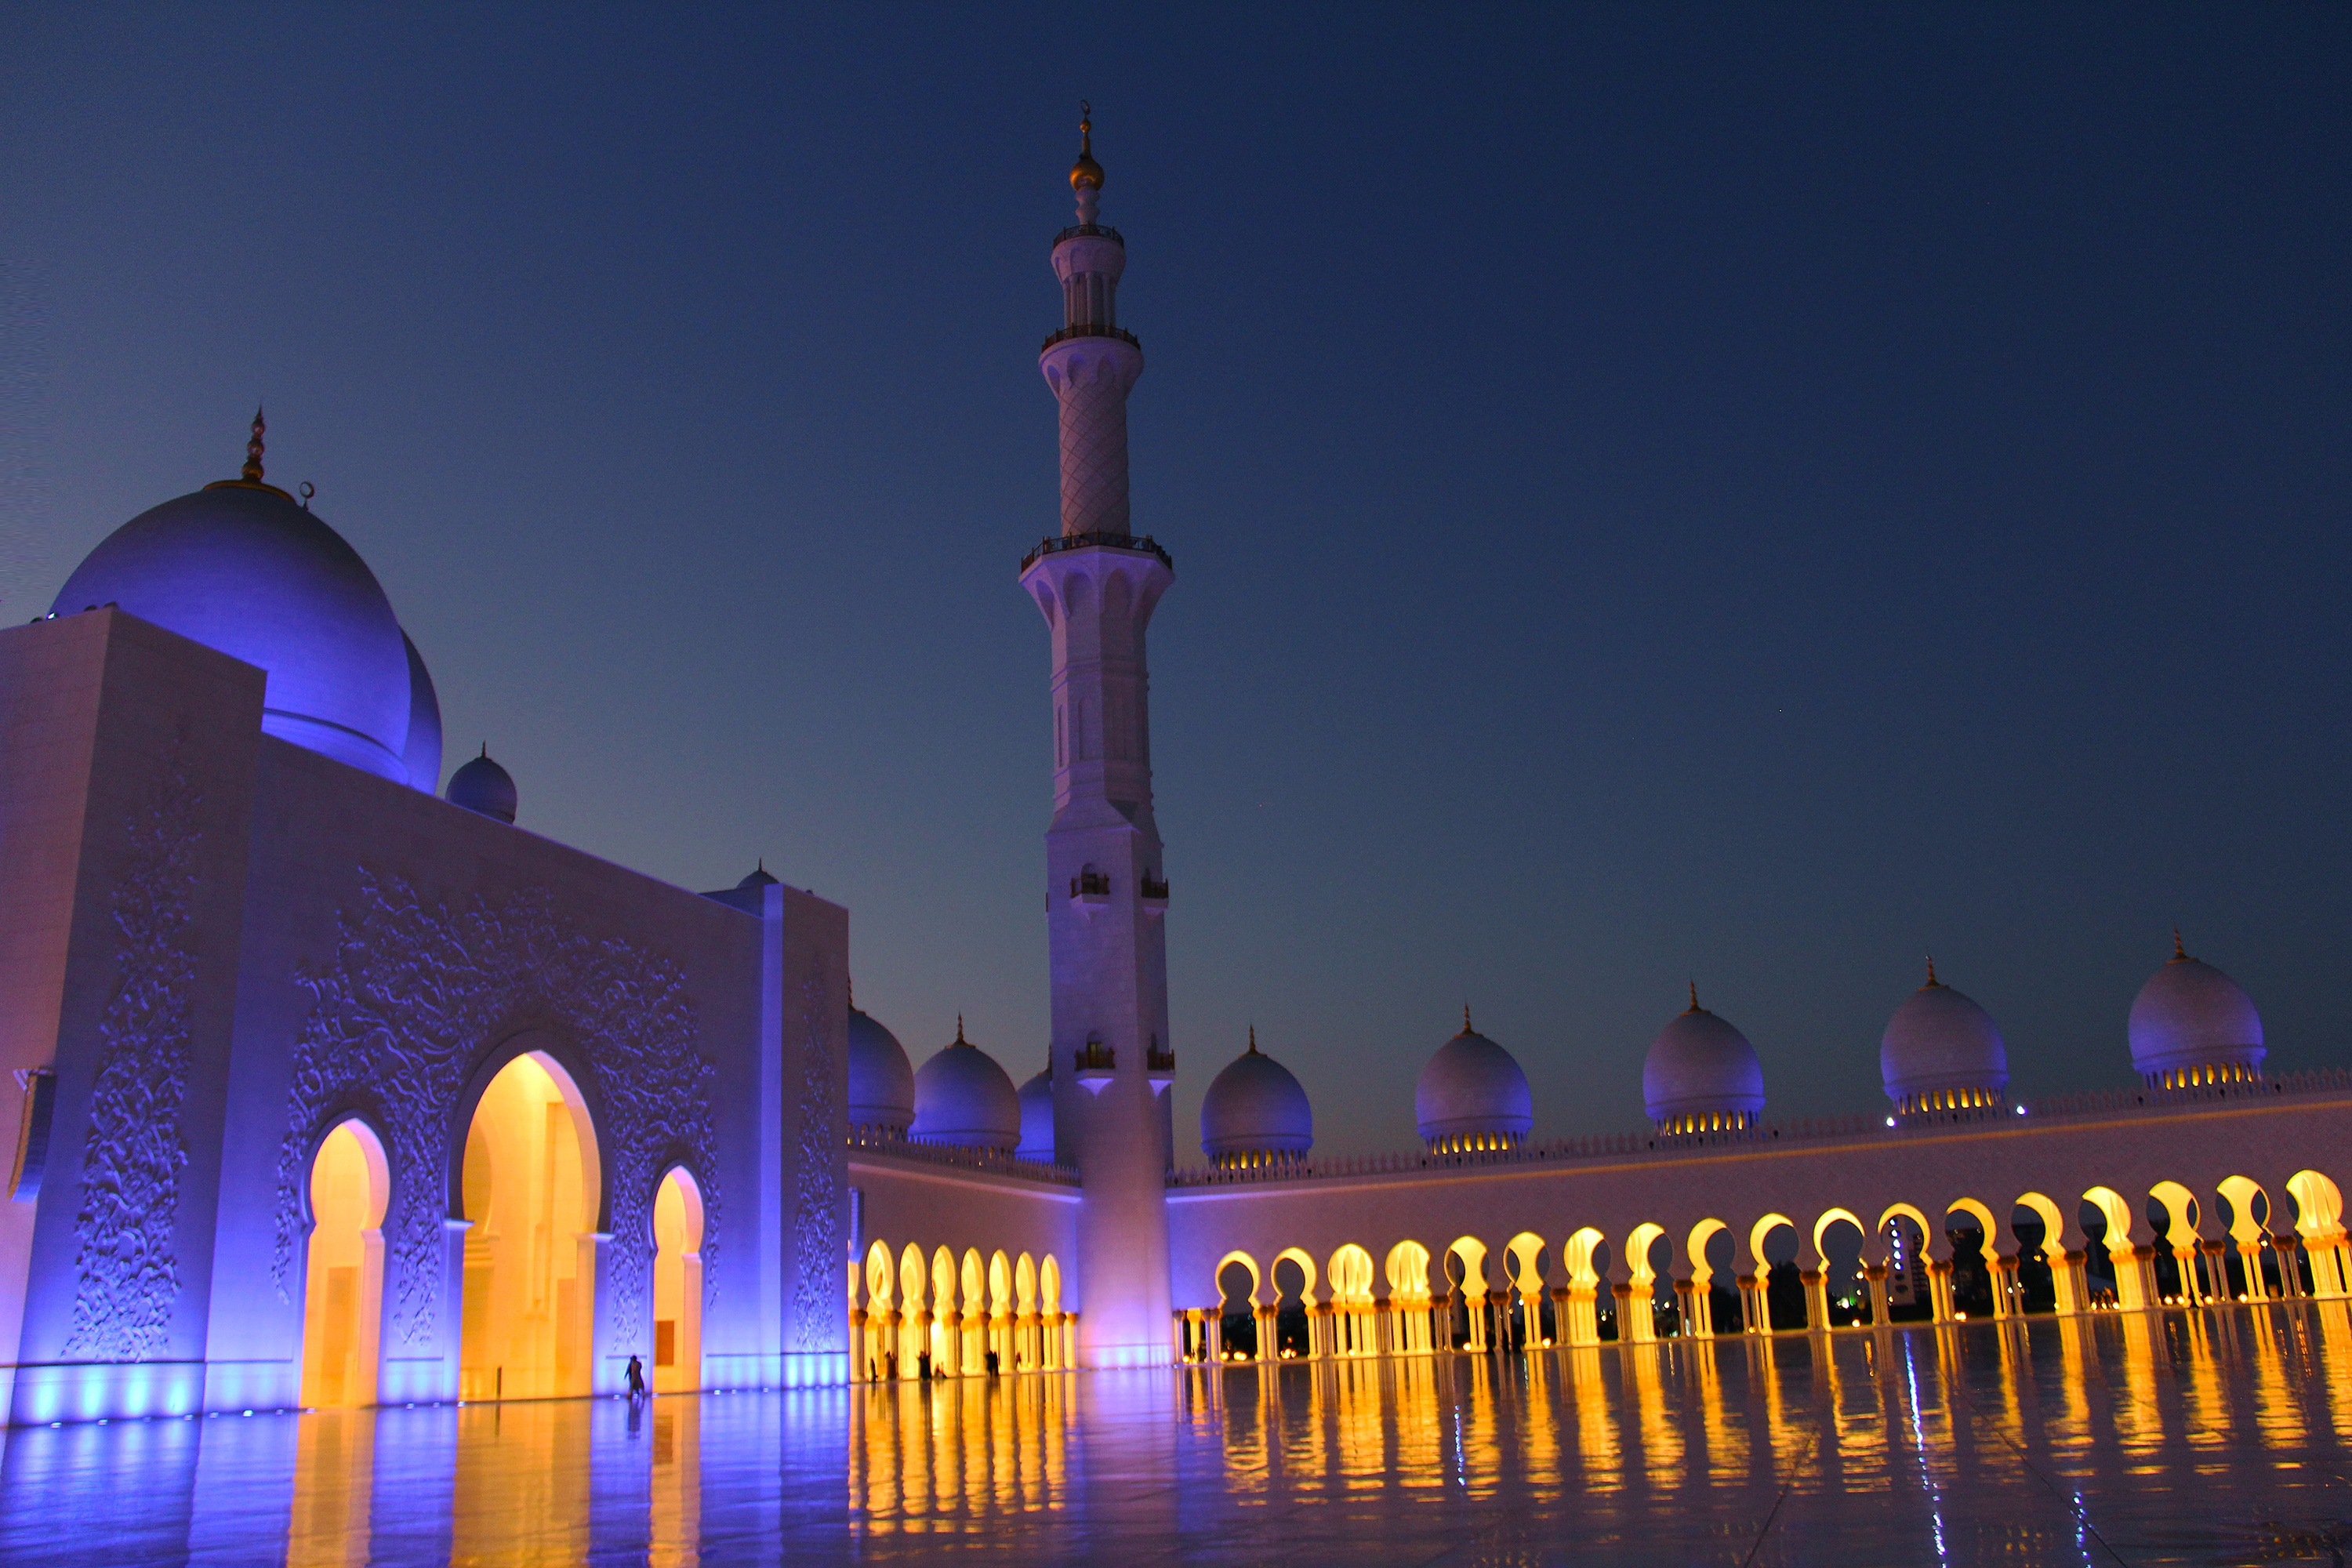 Sheikh Zayed Grand Mosque Hd World 4k Wallpapers Images